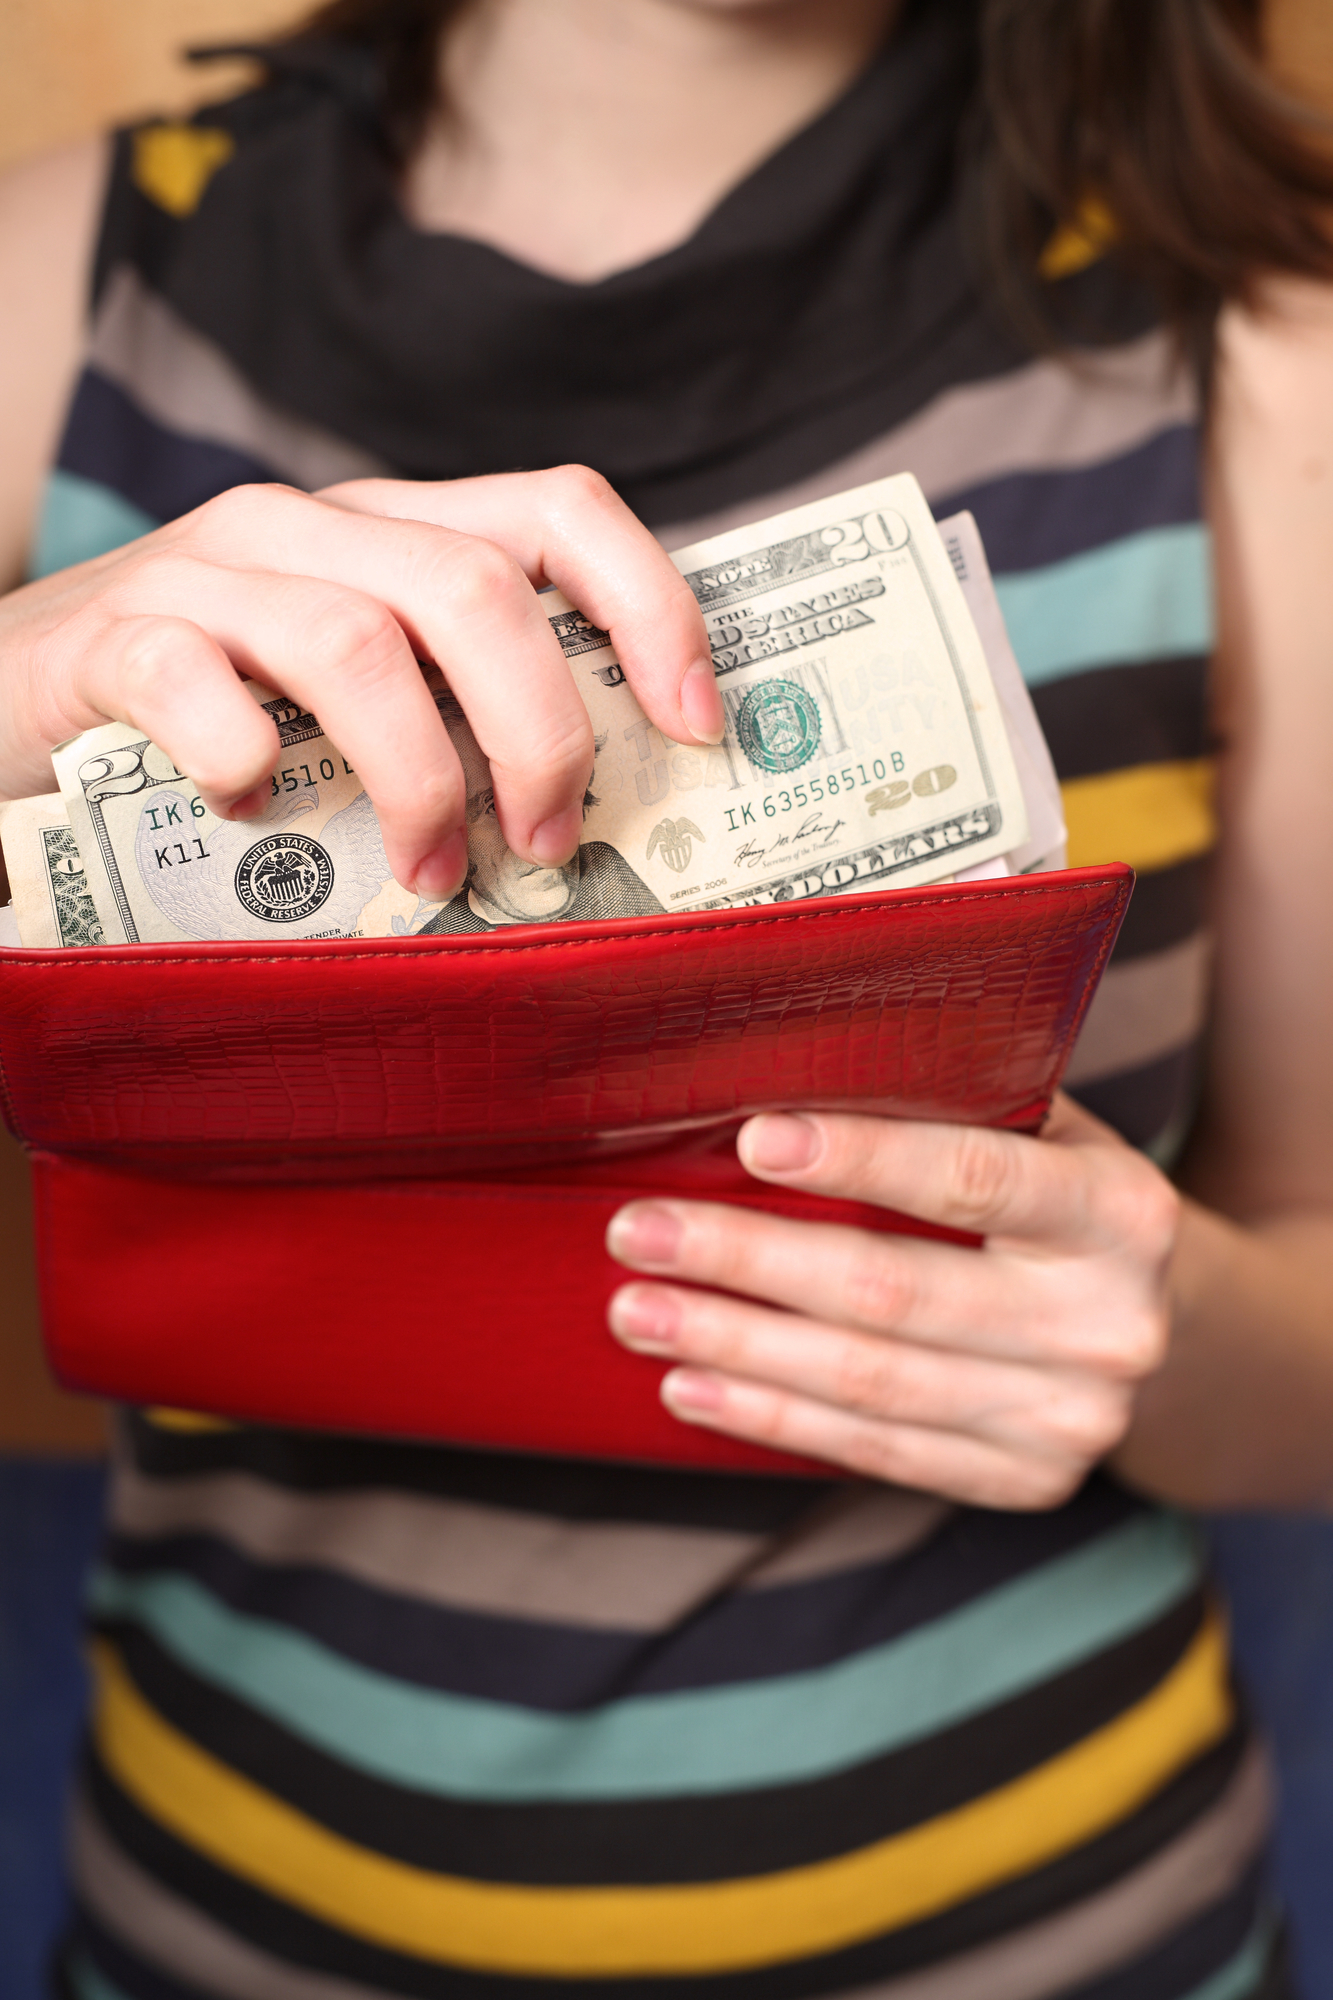 Female hands get money from a purse